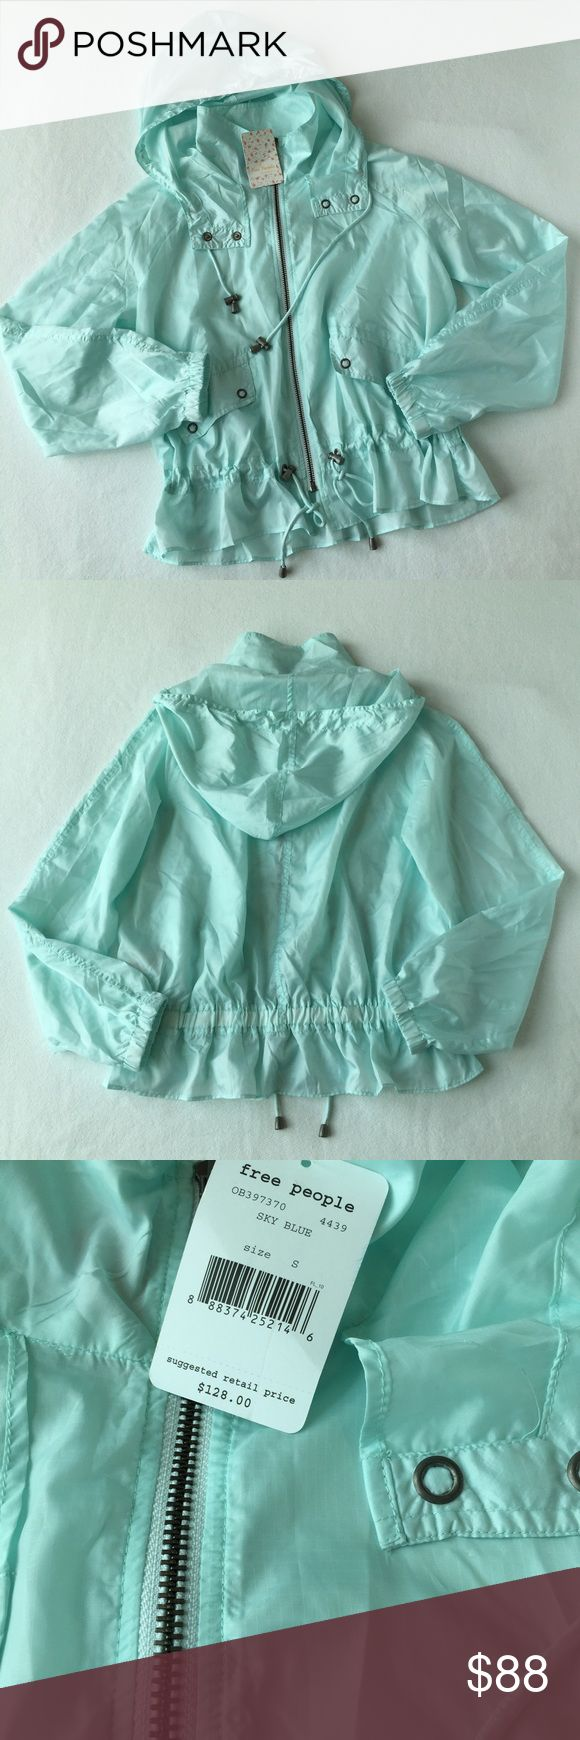 (NWT)Free People Sky Blue Jacket 👇PLZ READ THE COMPLETE DESCRIPTION BEFORE COMMENTING! Thank u!👇  NWT Size: S Retail: $128 100 % polyester    Color may be slightly different bcz of lighting  📛Price is FIRM unless bundled!📛 2 items➡️10% off 3 items➡️15% off(add to a bundle , then tag me to change the discount rate for u)  ❌Trades ❌Holds All sales r final! Welcome product-related questions! I am willing to provide more info, but ur responsible for ur size.💕 Free People Jackets & Coats